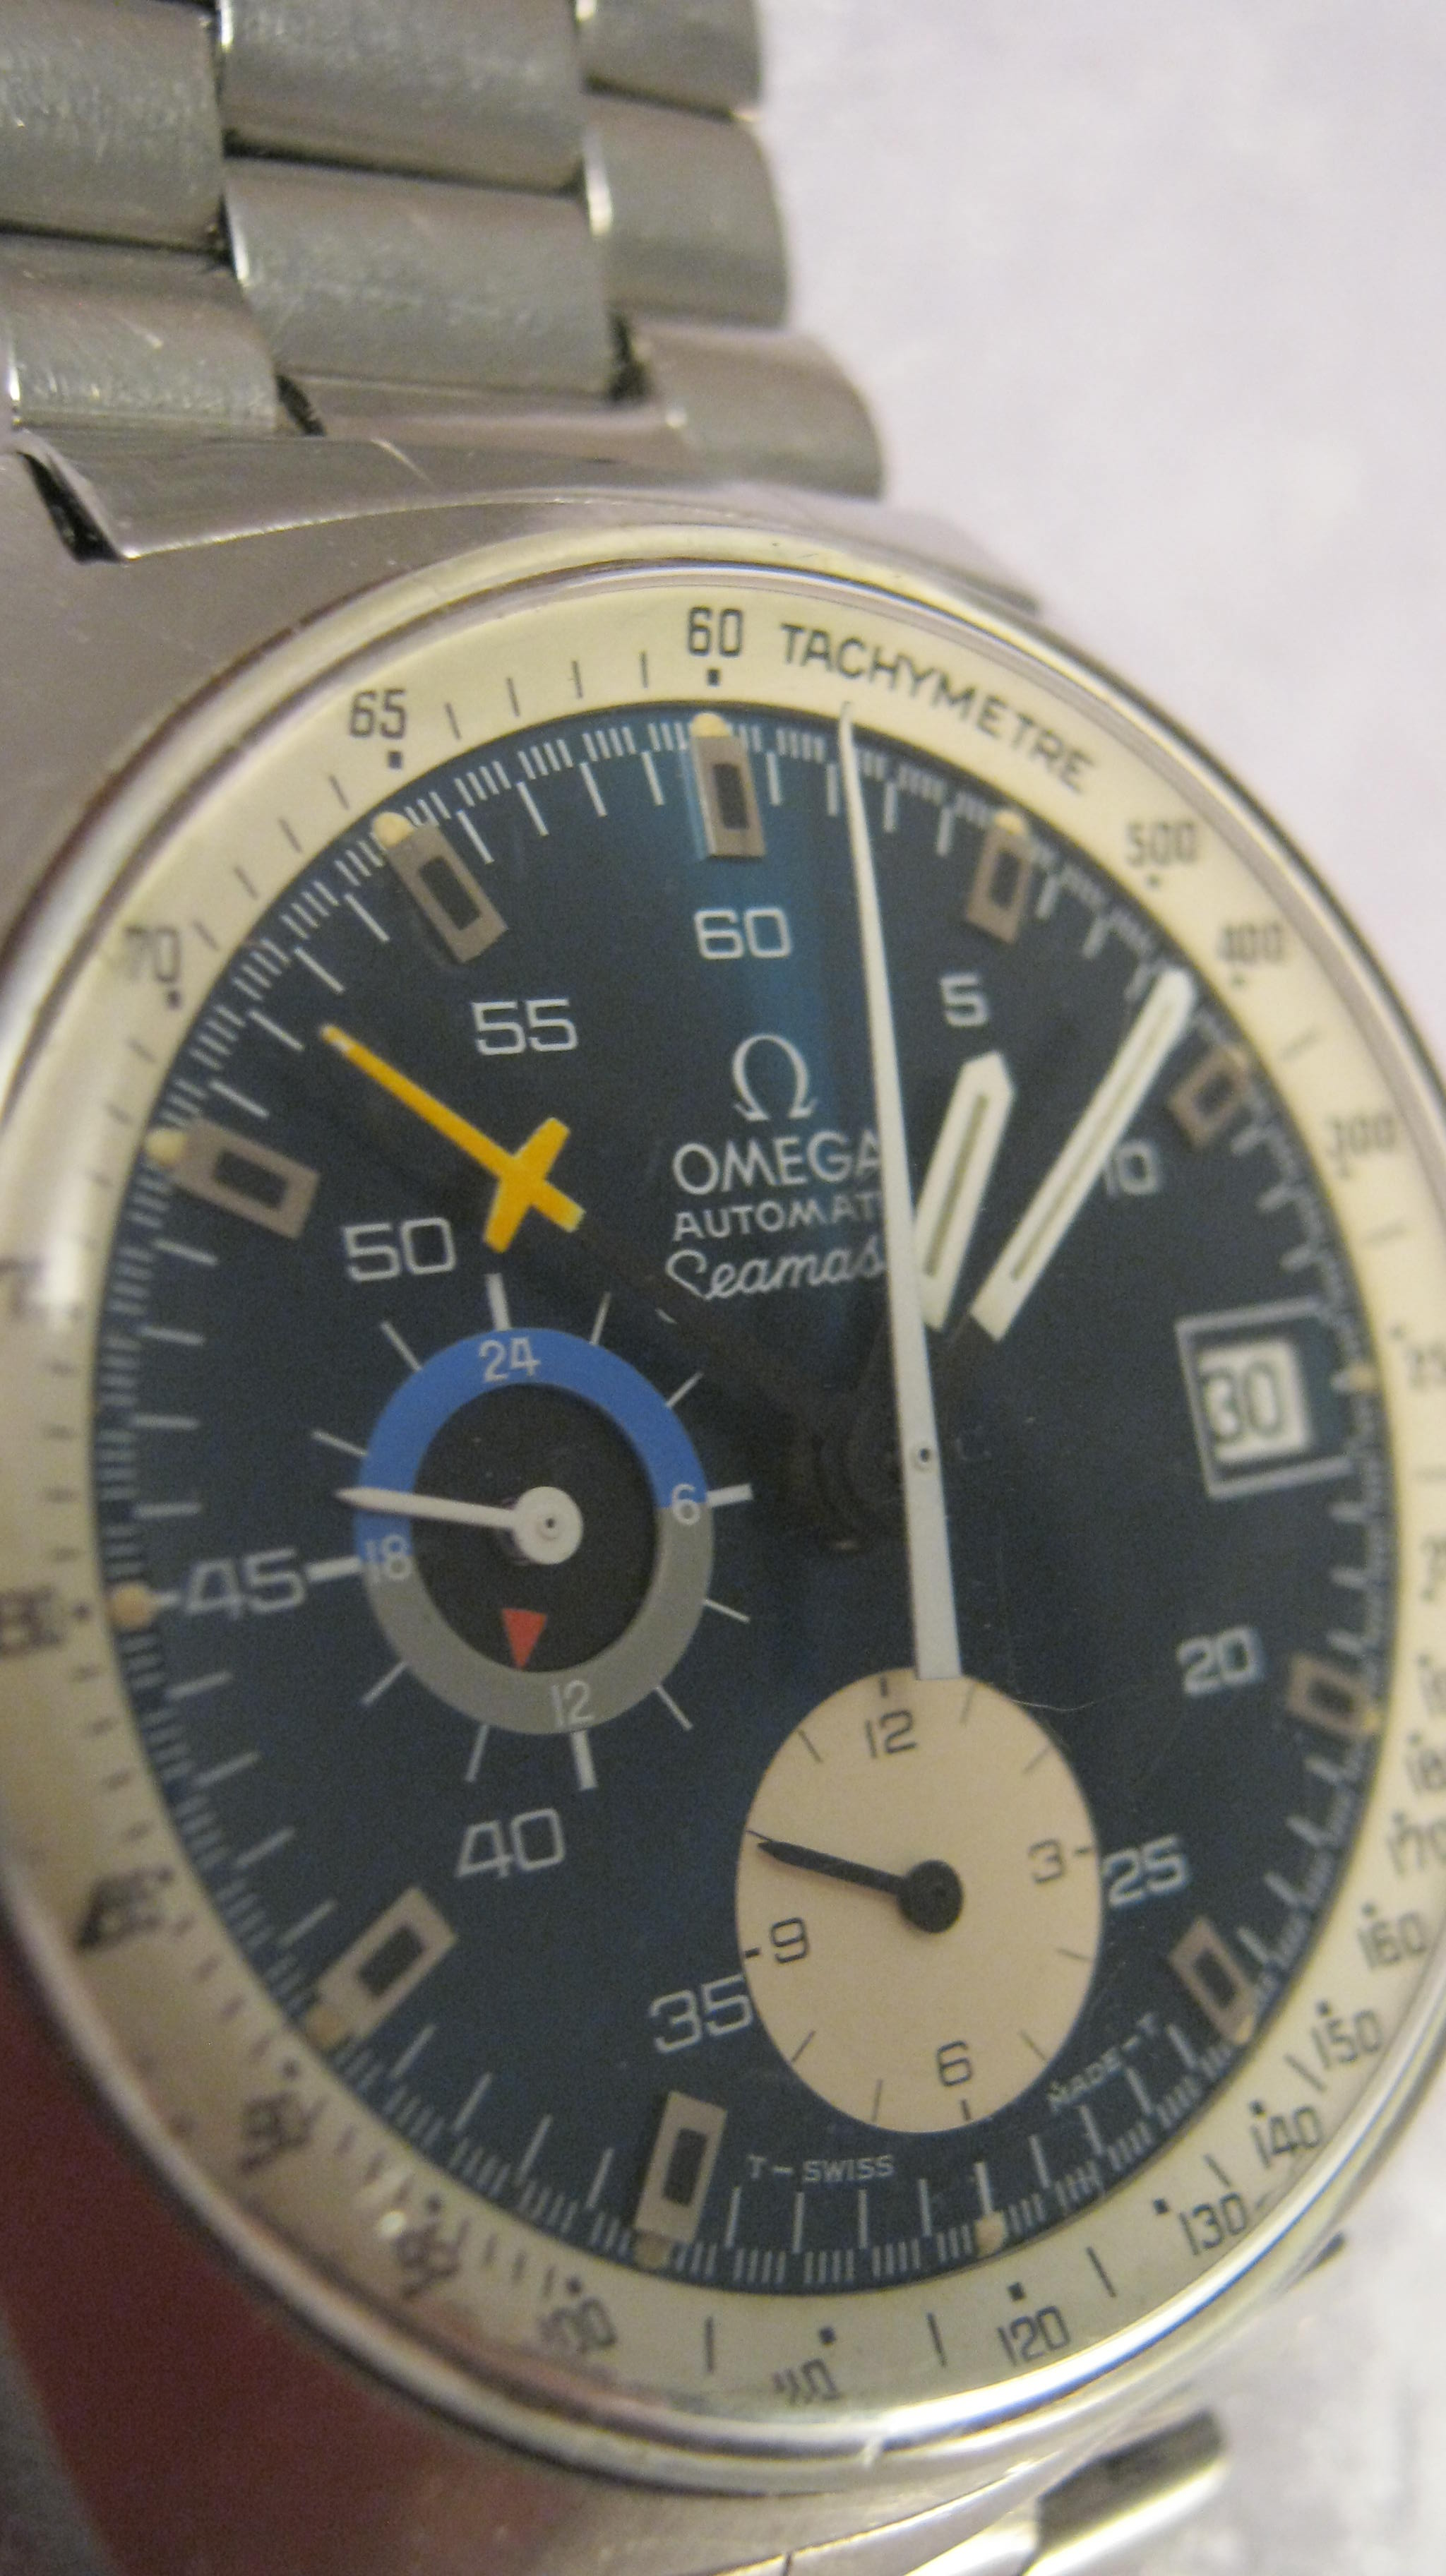 Rare vintage omega seamaster chronograph hobart town antique jewellery vintage watches for Omega watch vintage